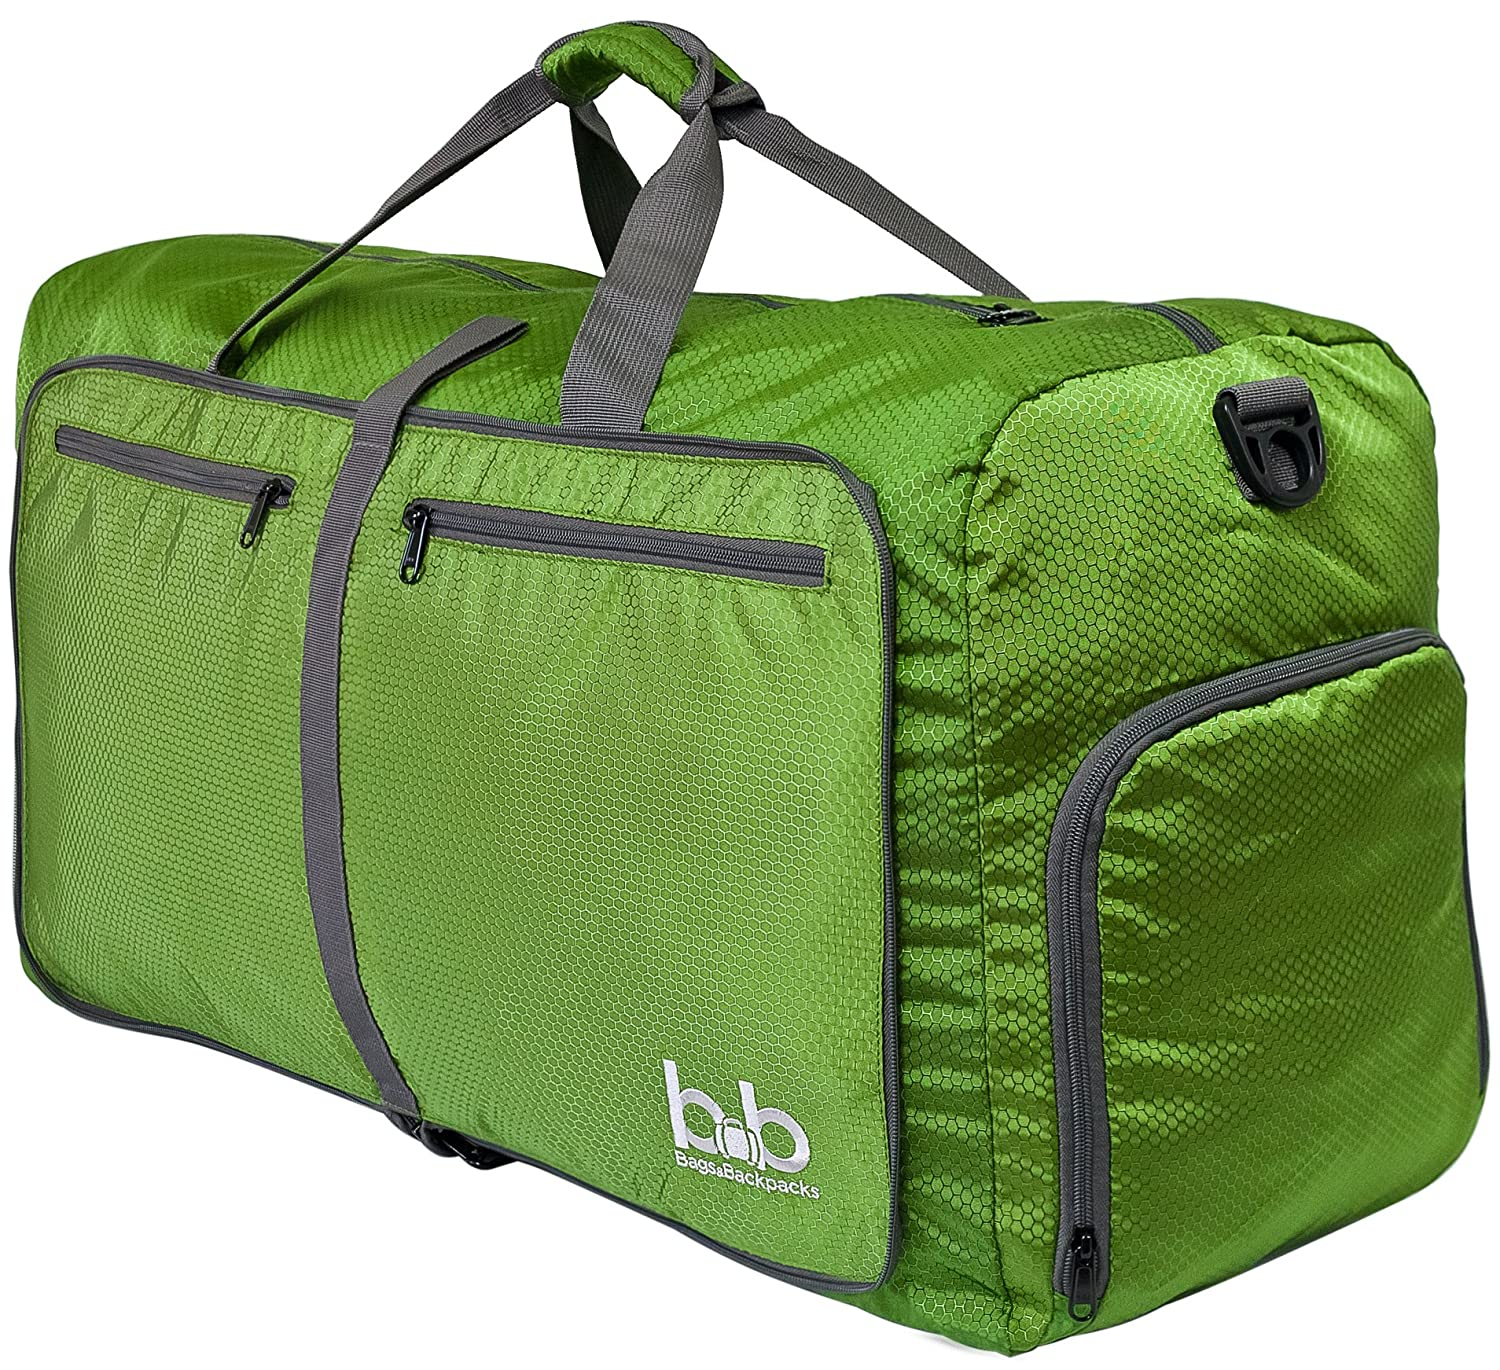 BB Duffle Bag with Pockets for Women and Men - Travel Duffel Bags for Gym Sports BB Bags&Backpacks BLL168943